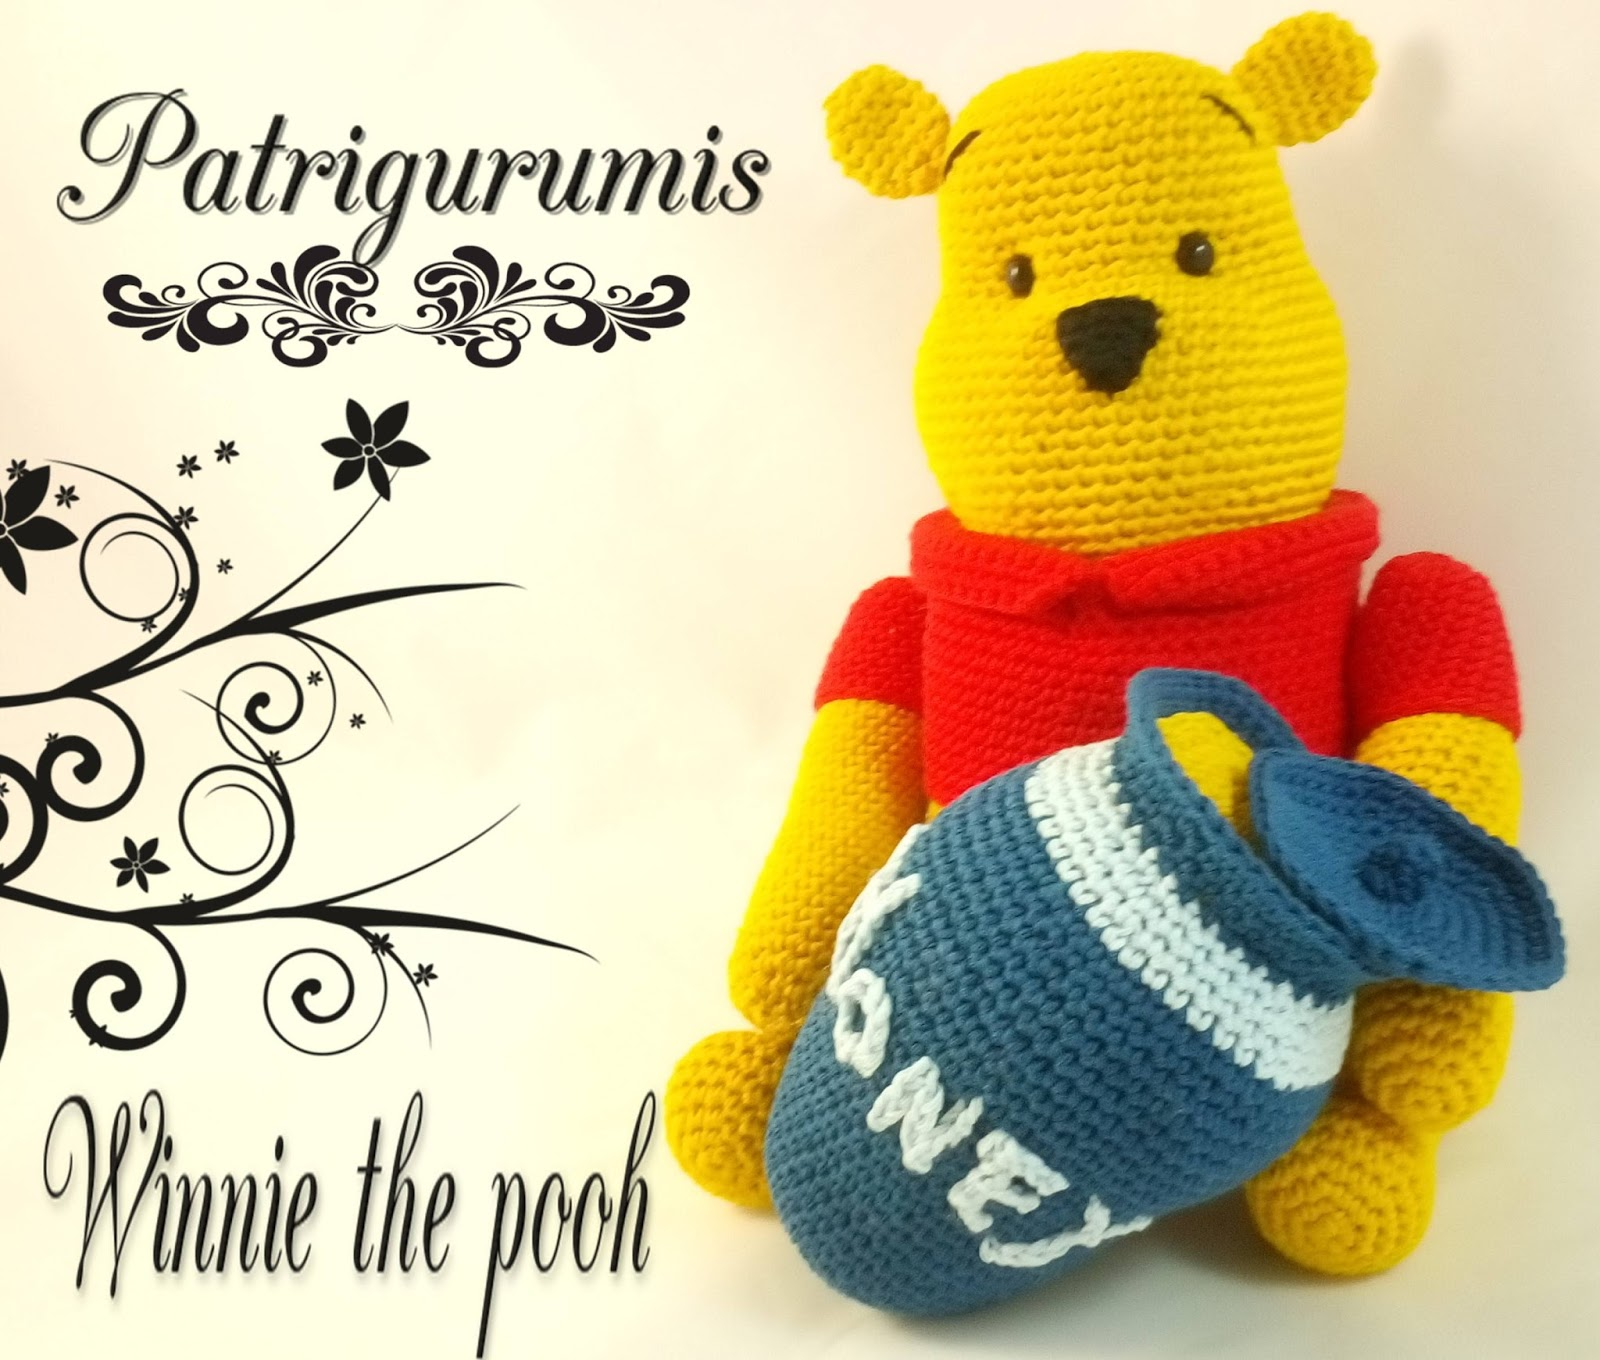 Crochet Winnie The Pooh Backpack Free Pattern [Video] - Crochet ... | 1360x1600